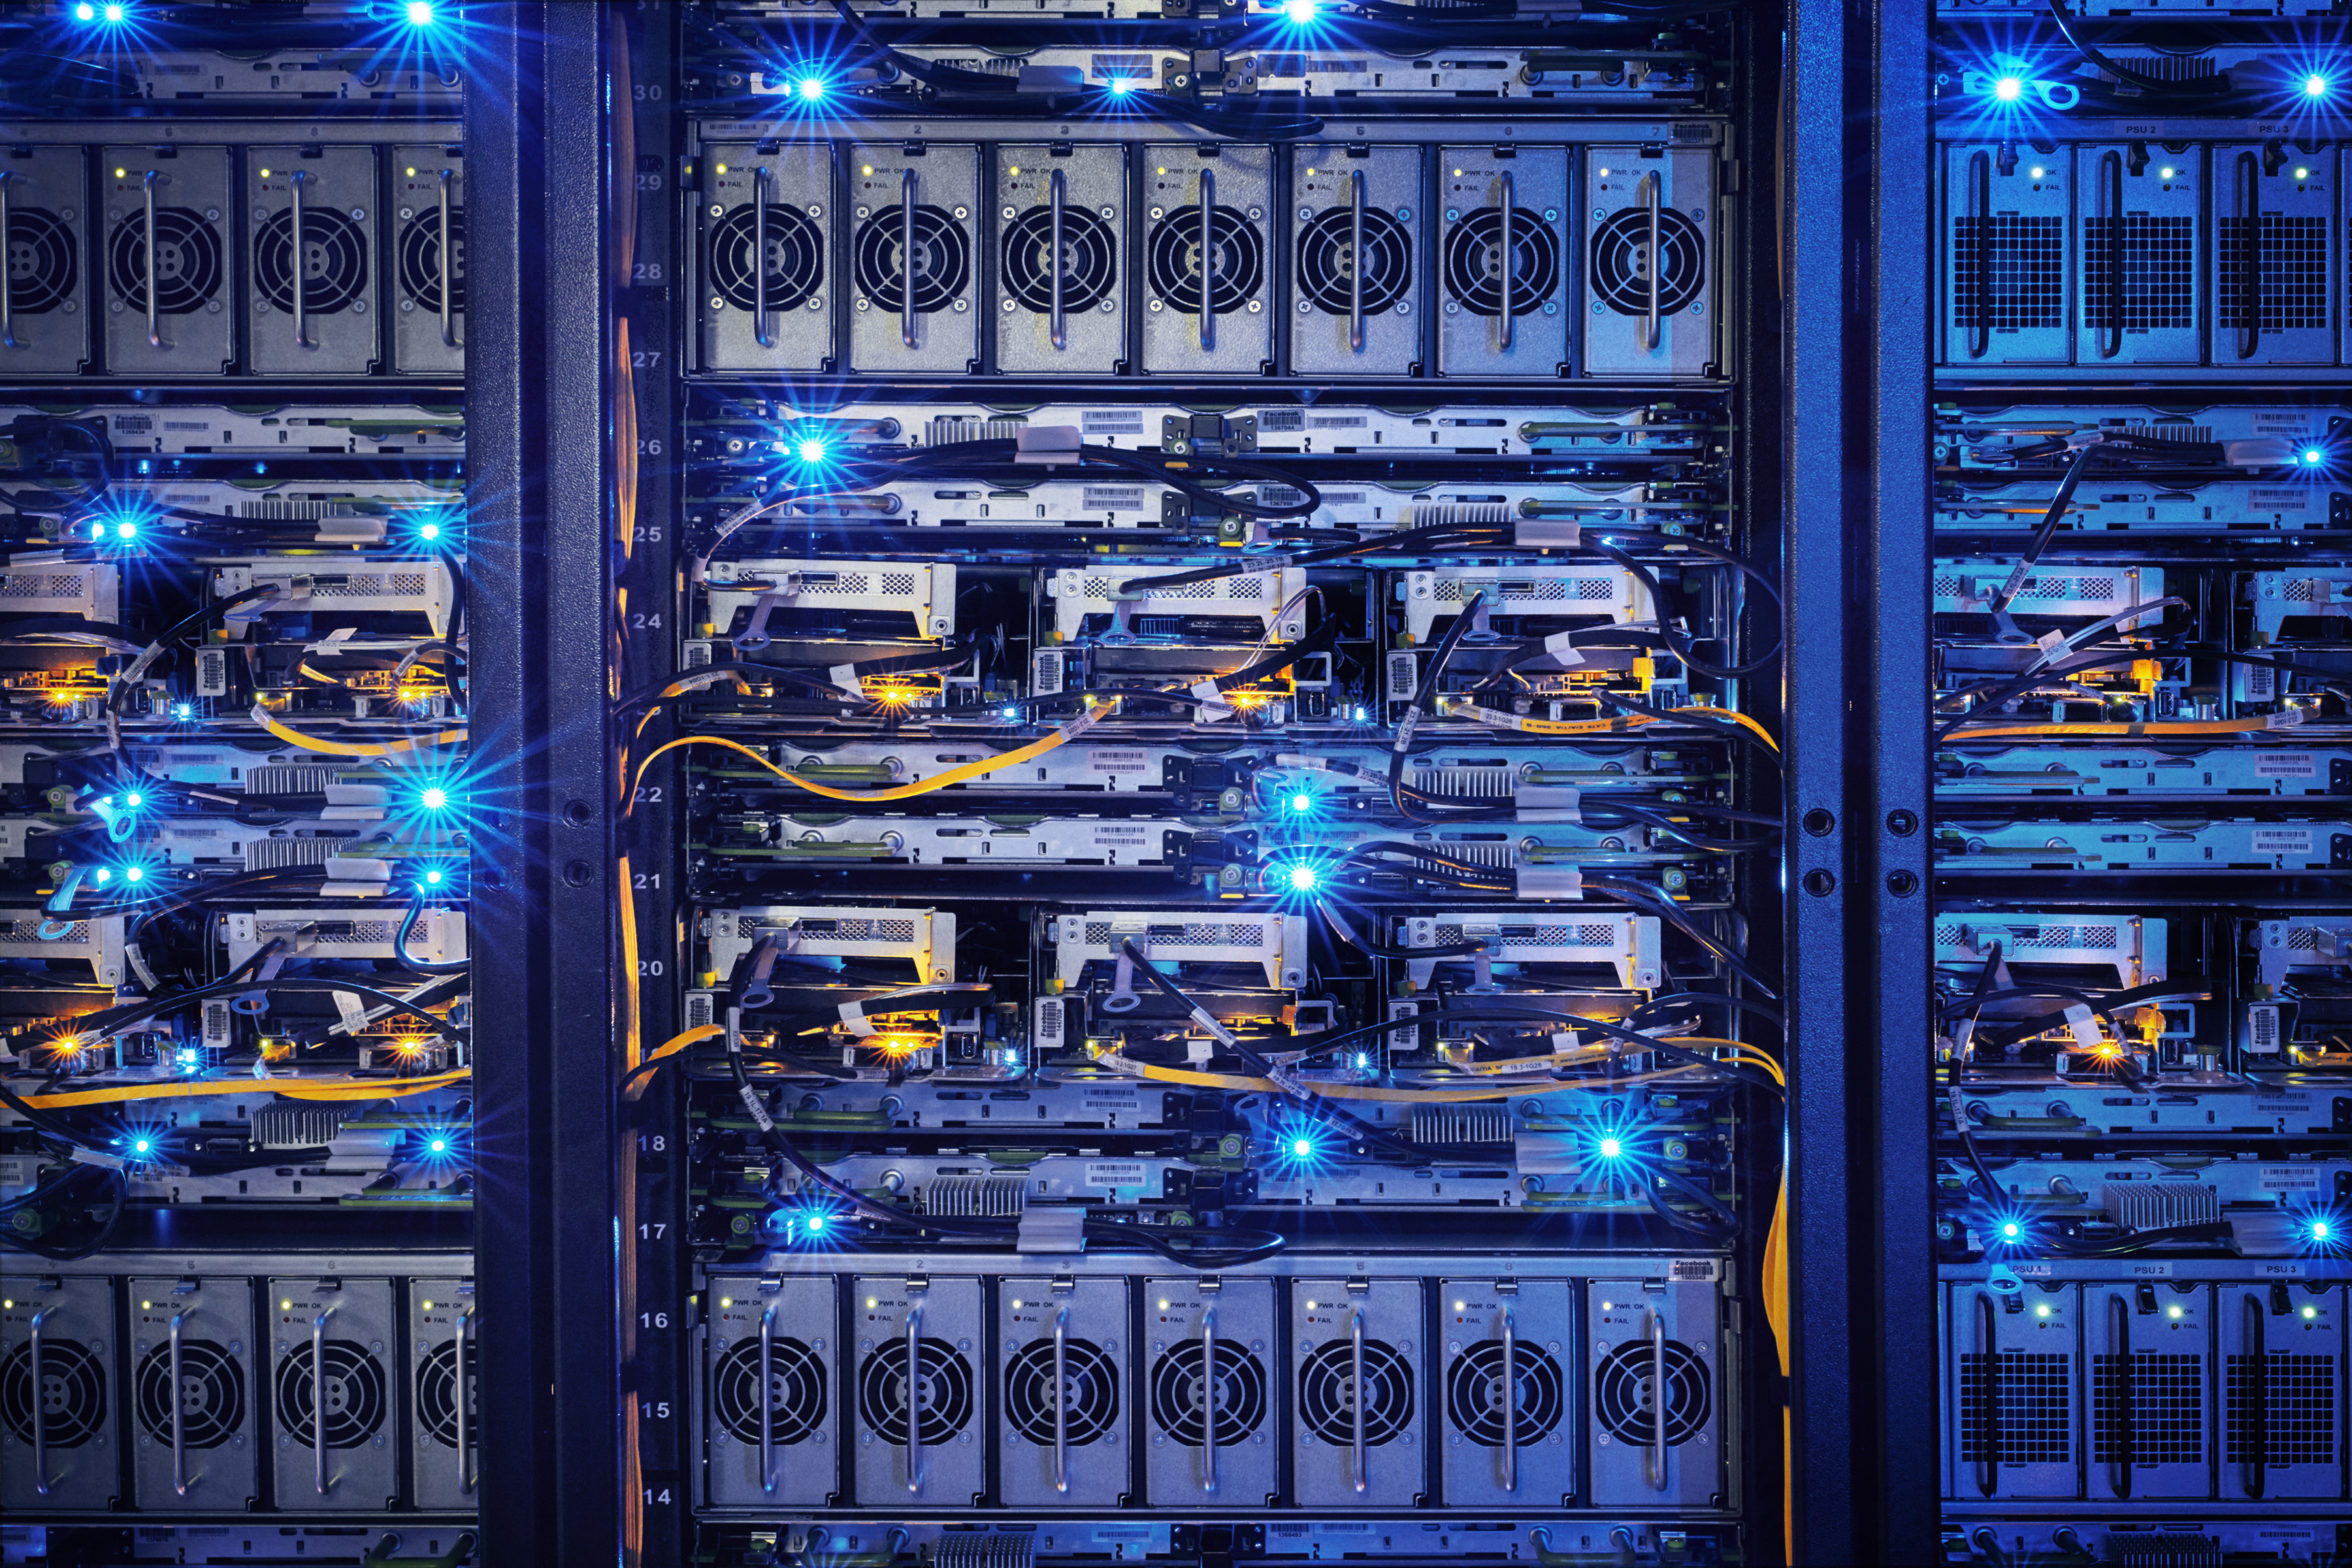 It takes just two minutes to repair a server hard drive at Facebook's data centers, compared to a few years ago when it took an hour,                                according to the company.